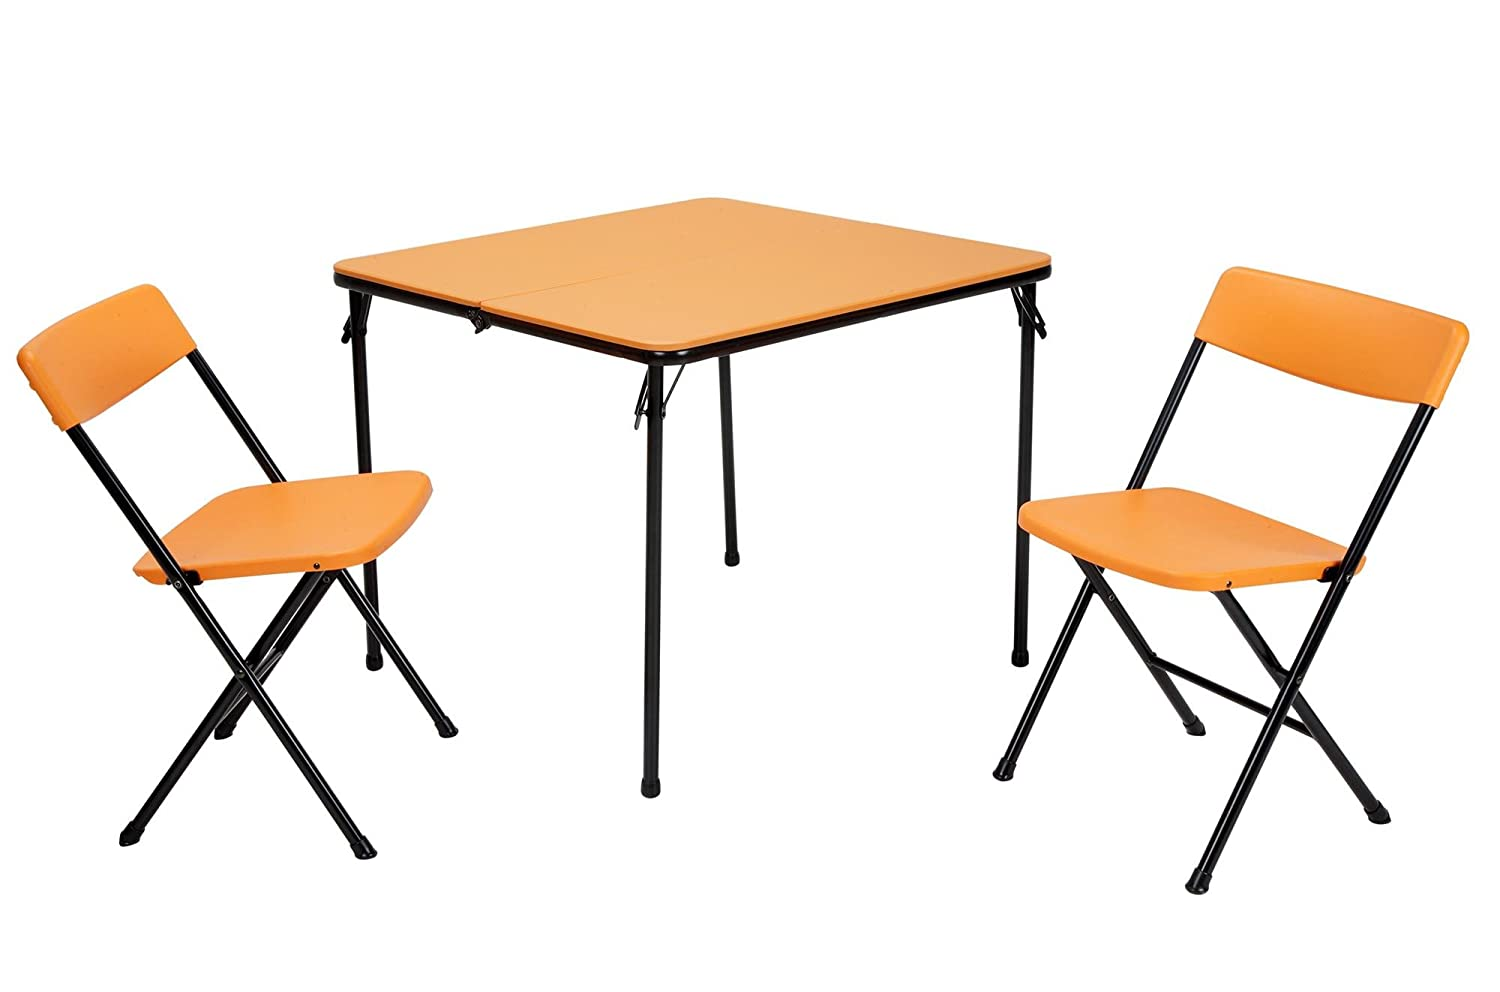 COSCO 3 Piece Indoor Outdoor Center Fold Table and 2 Chairs Tailgate Set, Orange, Black Frame